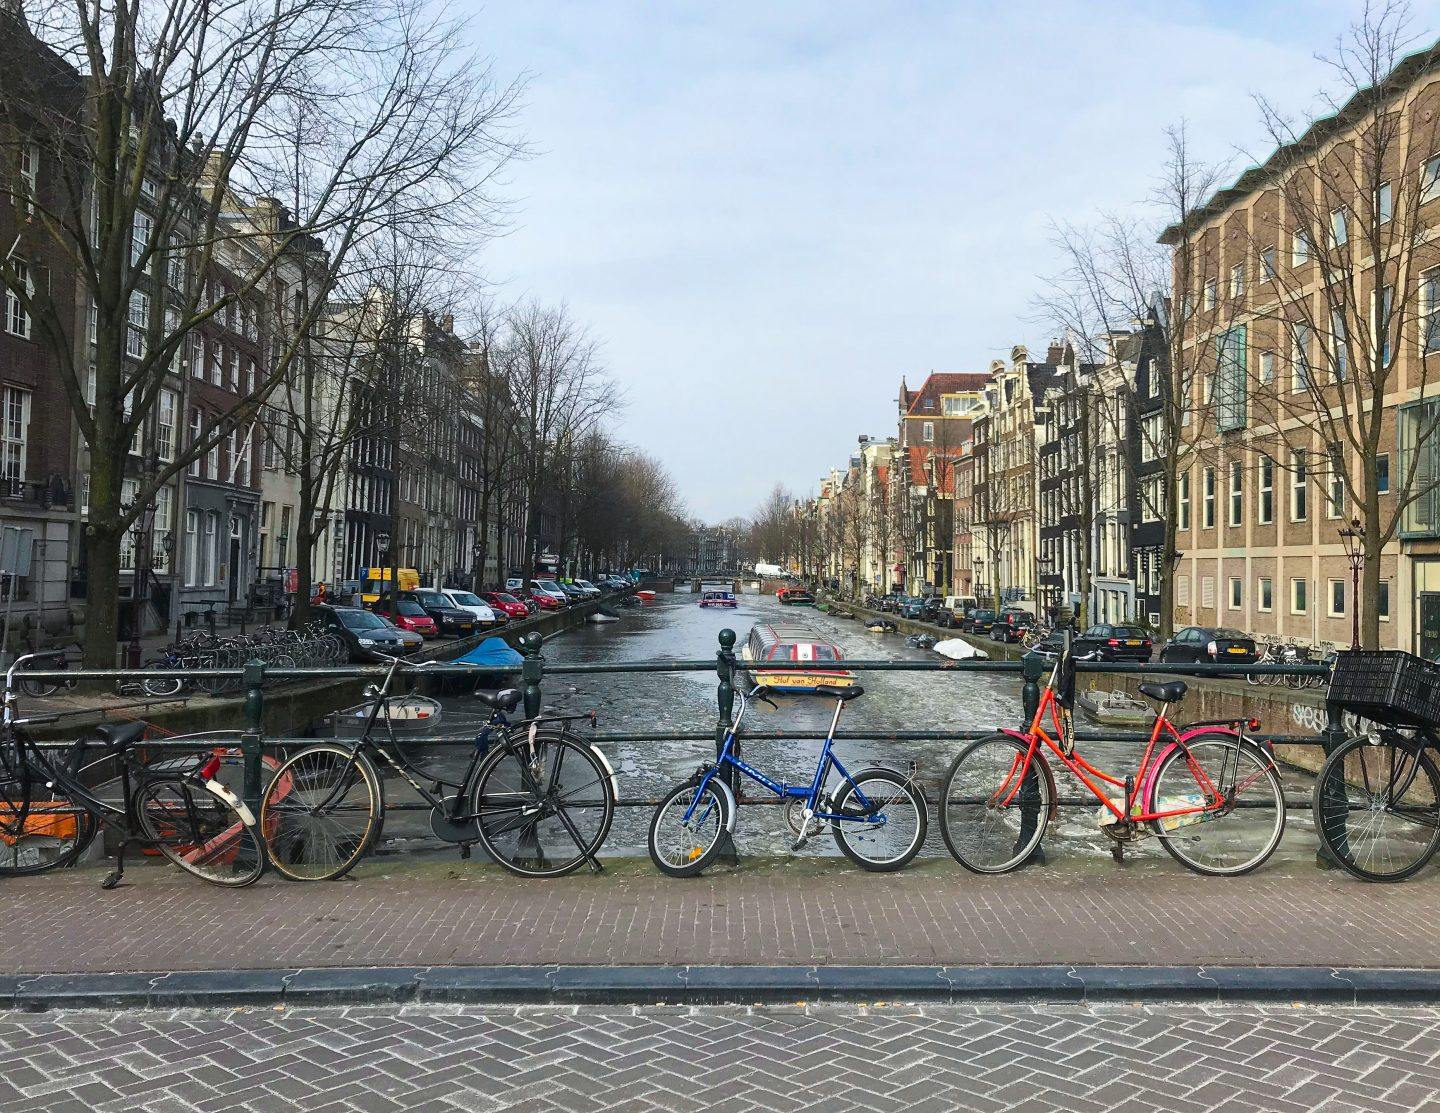 a row of bikes in amsterdam tips on francescasophia.co.uk